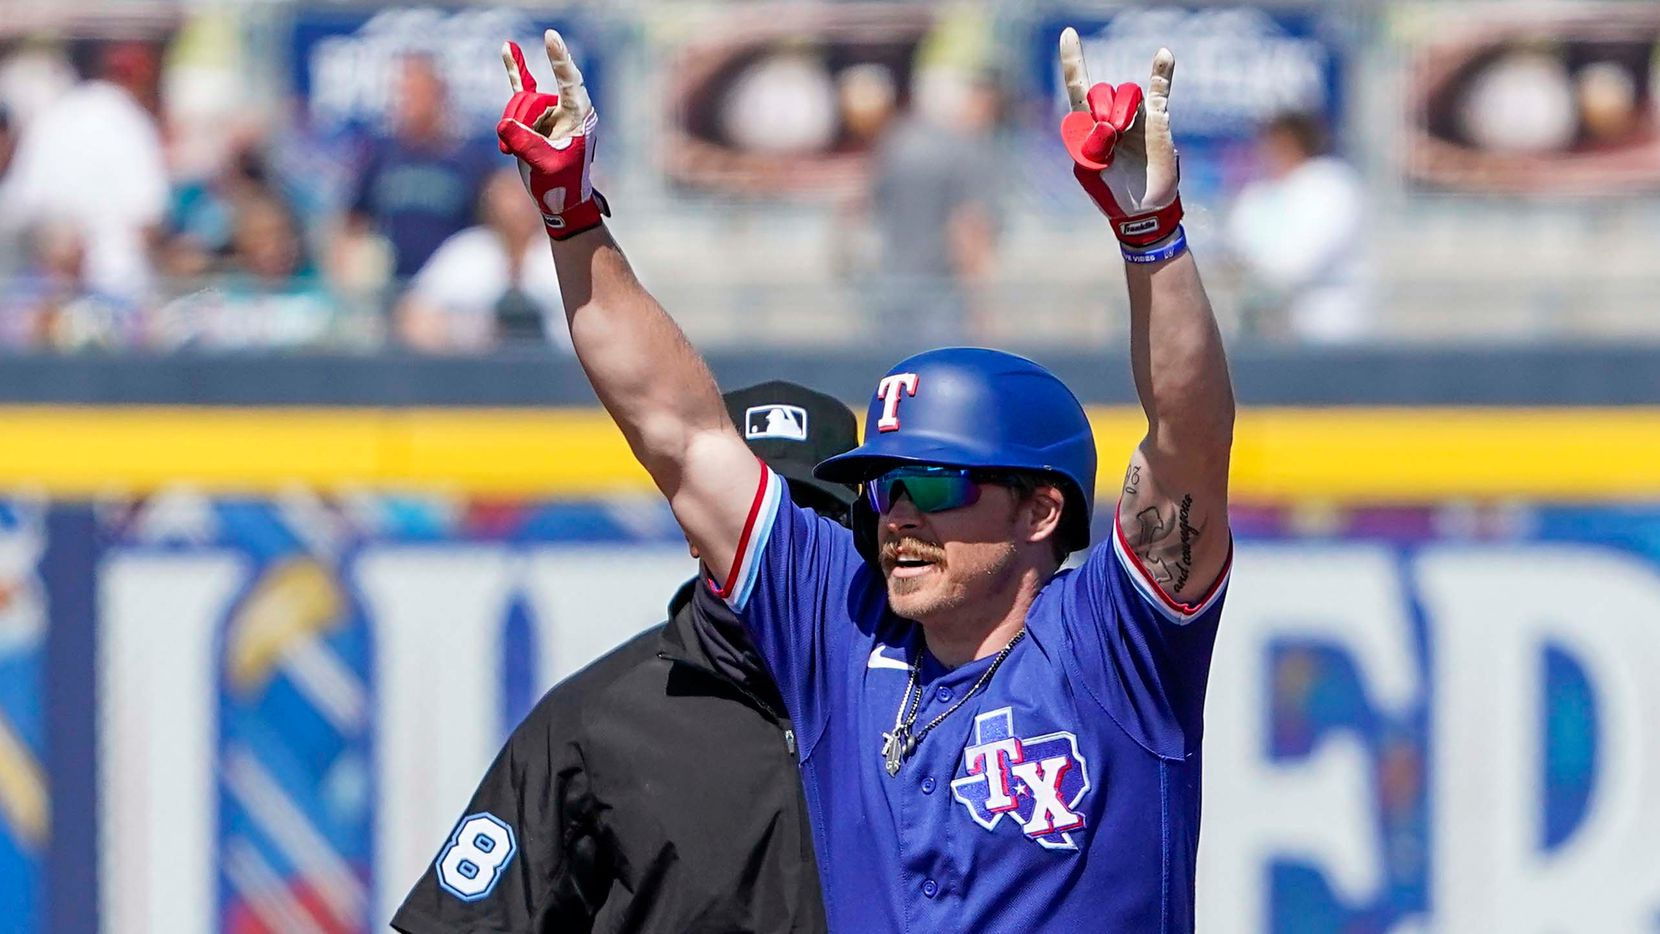 Texas Rangers infielder Brock Holt celebrates at second base after hitting a leadoff double during the first inning of a spring training game against the Seattle Mariners at Peoria Sports Complex on Wednesday, March 10, 2021, in Peoria, Ariz.